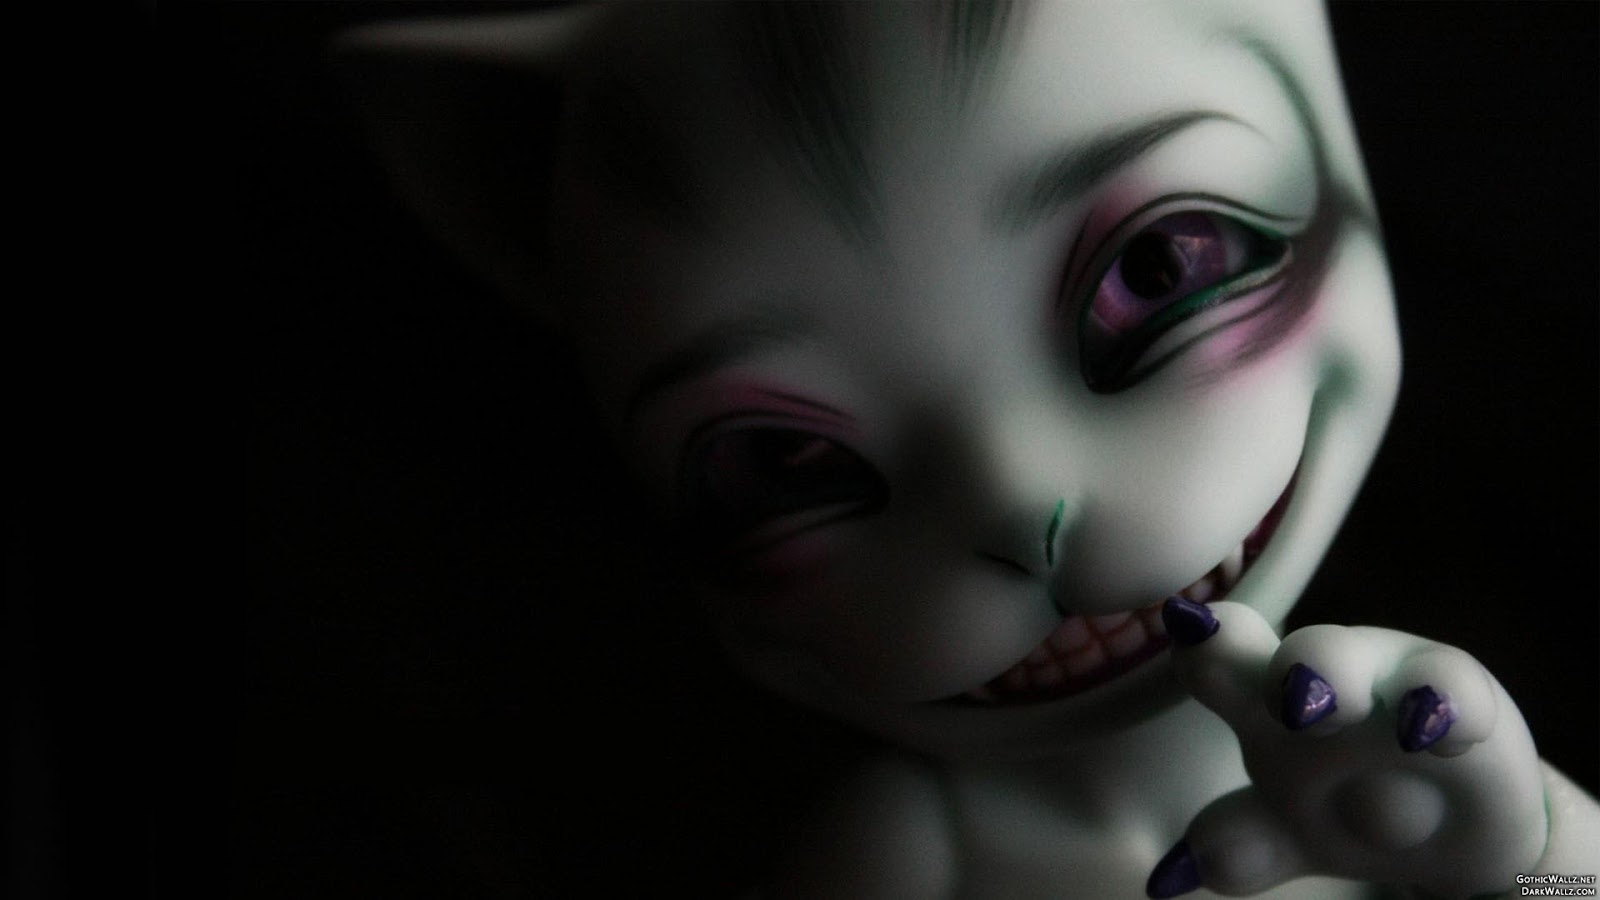 Scary weird creepy creature Wallpaper Dark Wallpapers High Quality 1600x900